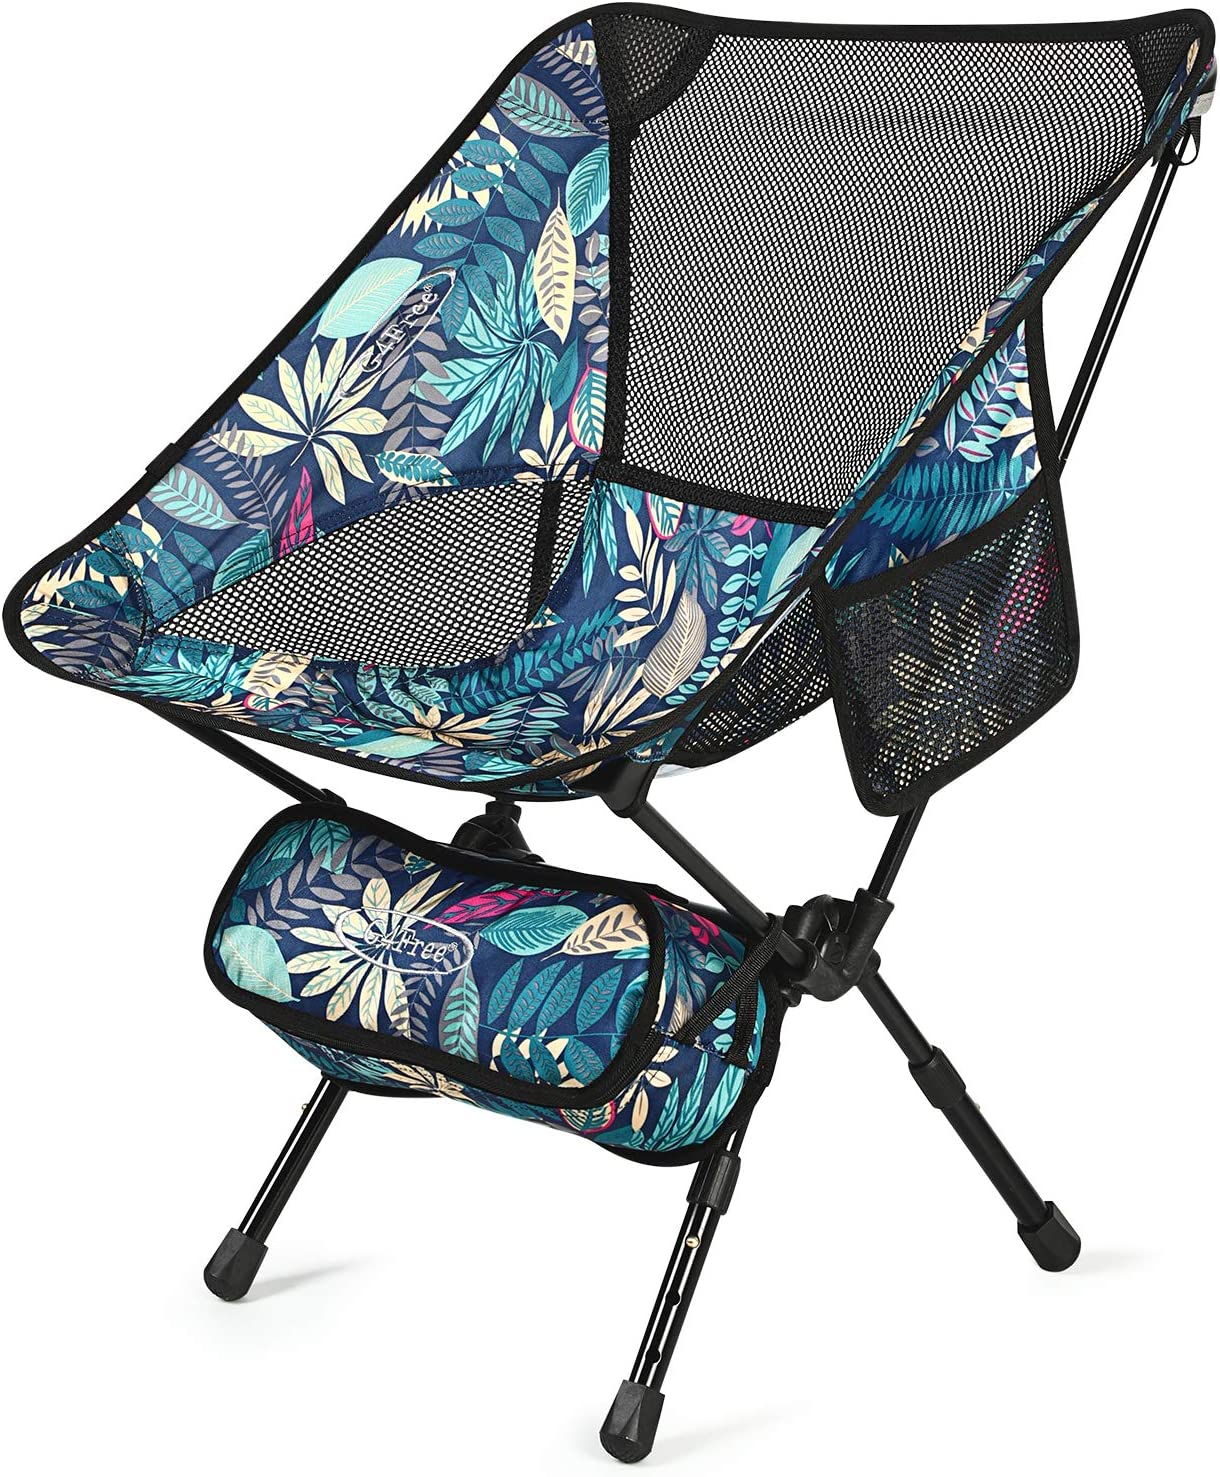 Red-adjustable G4Free Ultralight Folding Chairs Portable Fold up Camping Chairs with Carry Bag for Outdoor Hiking Picnic Fishing Travelling